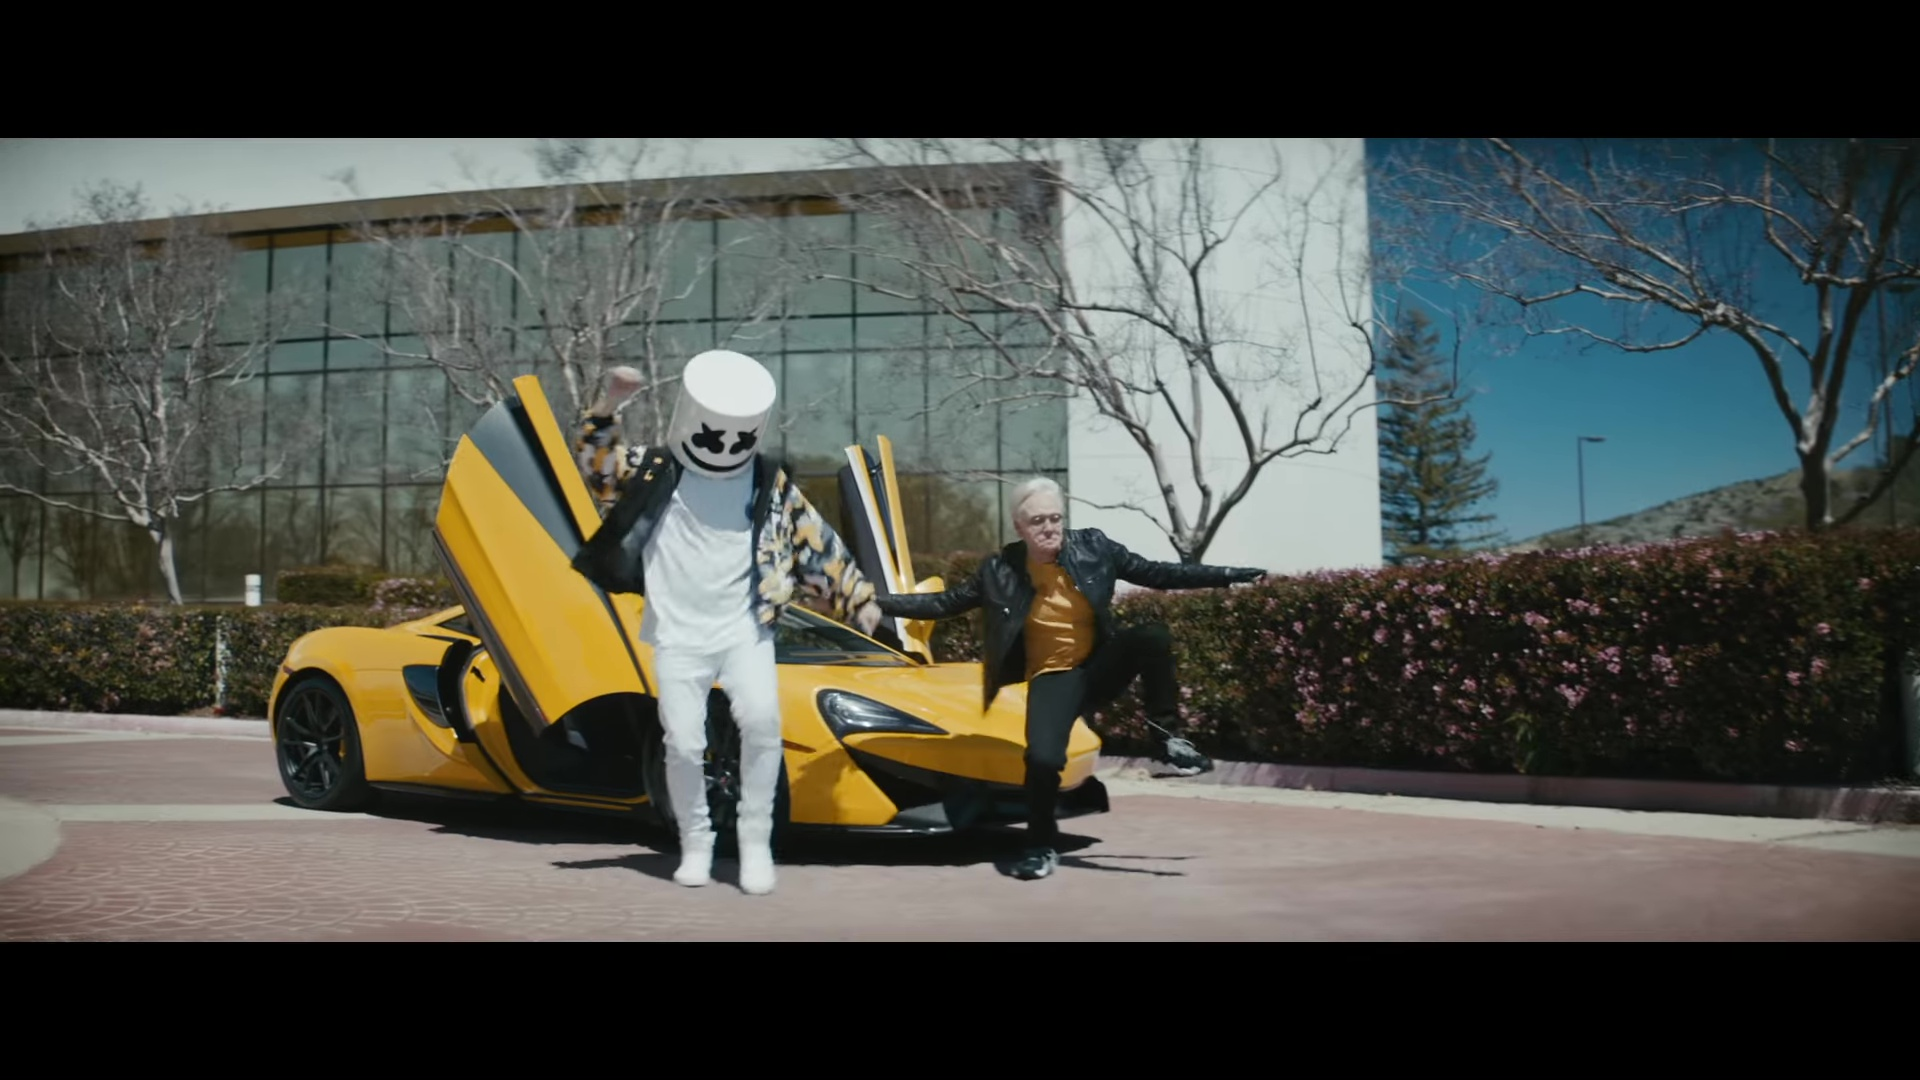 Mclaren Sports Car Yellow In Everyday By Logic And